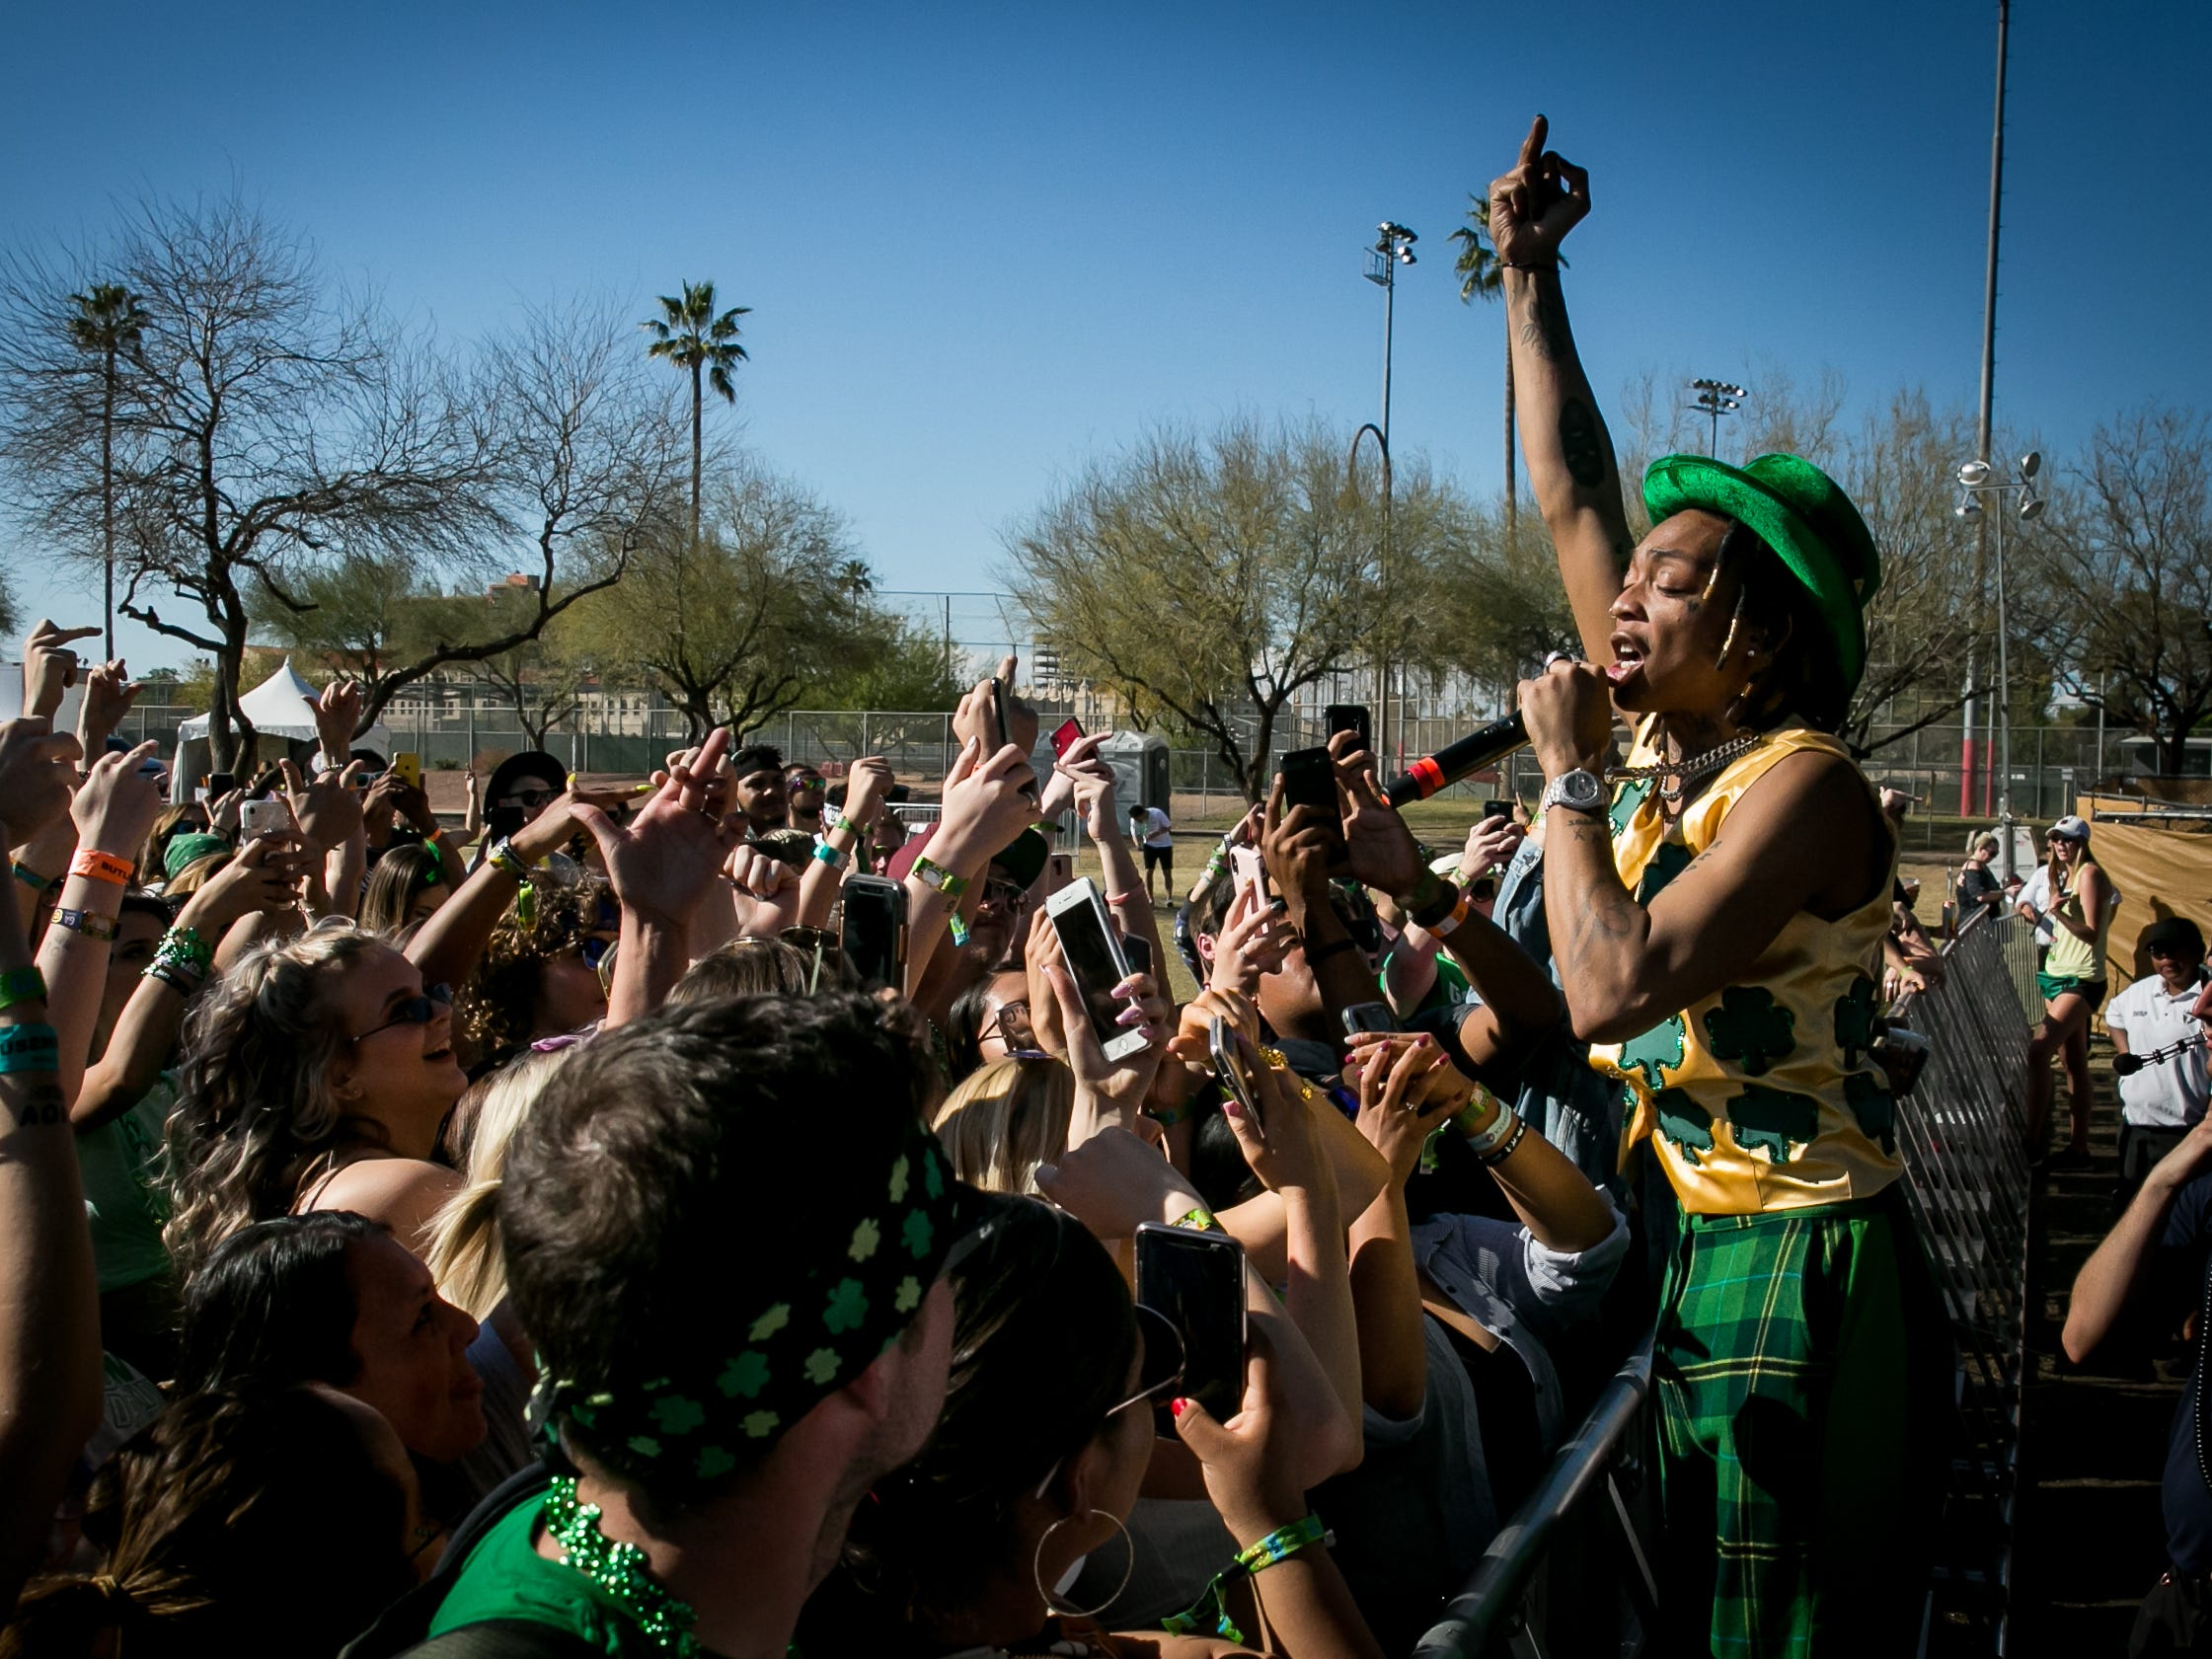 Tyla Yaweh performs at the Pot of Gold Music Festival at Steele Indian School Park on Sunday, March 17.